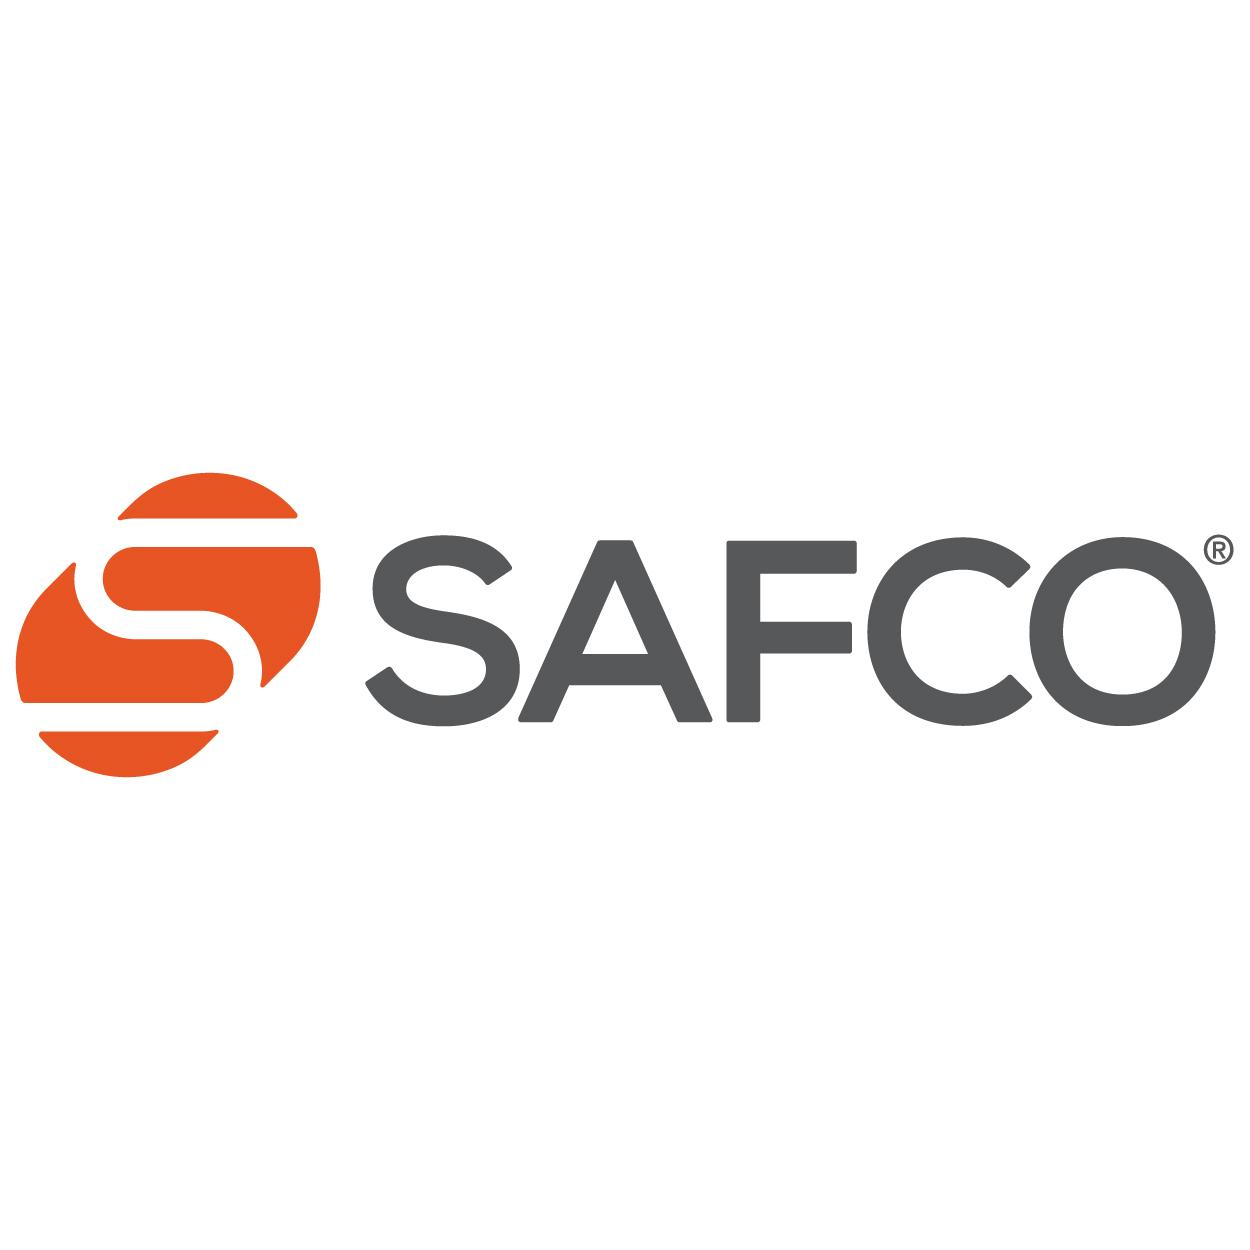 Safco Furniture Gallery